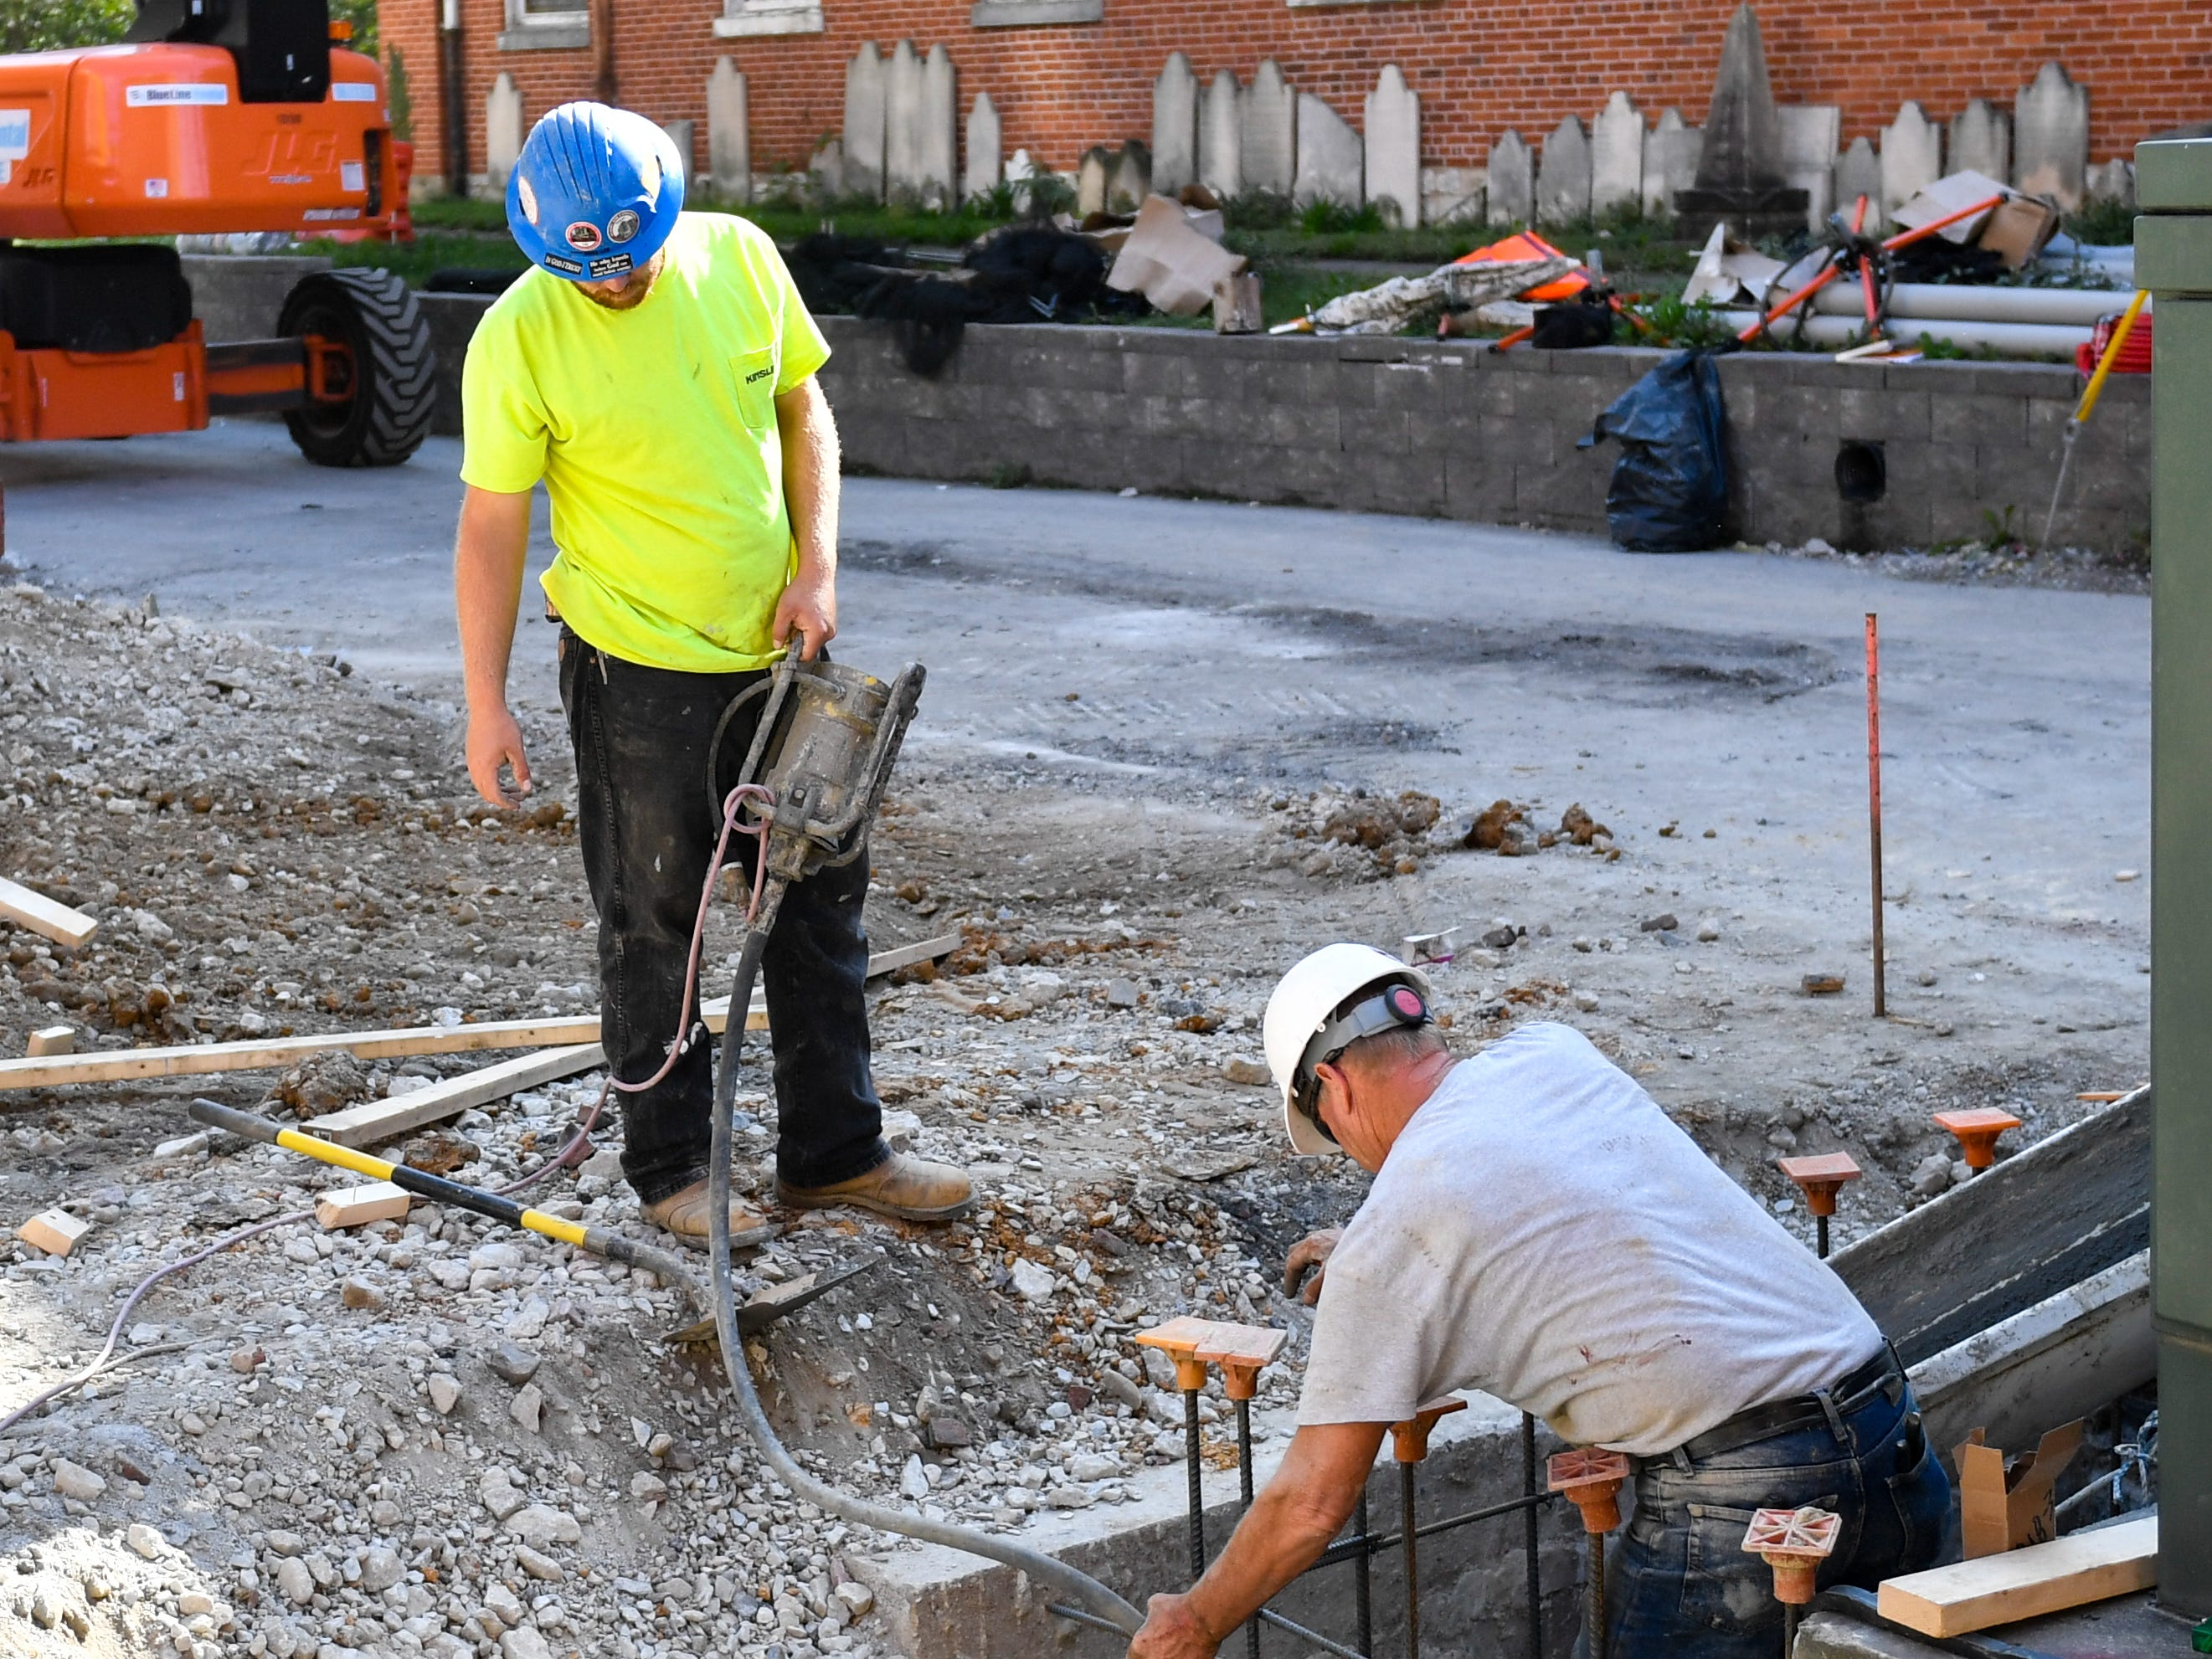 Construction workers lay down cement as part of the renovation process at the Yorktowne Hotel on October 4, 2018.